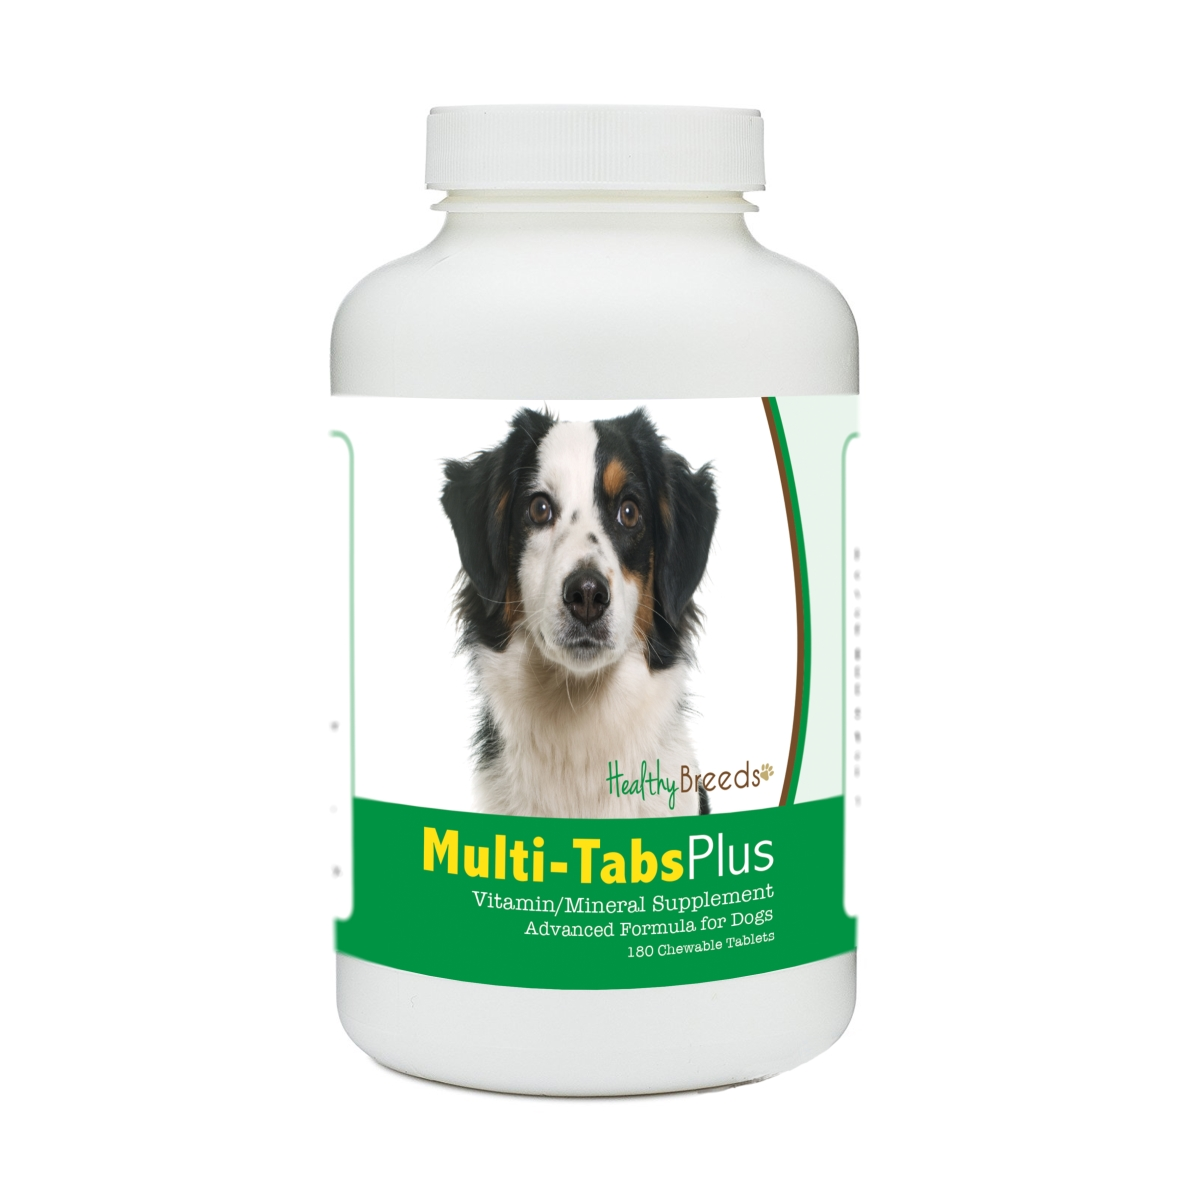 Healthy Breeds 840235182085 Miniature American Shepherd Multi-Tabs Plus Chewable Tablets - 180 Count